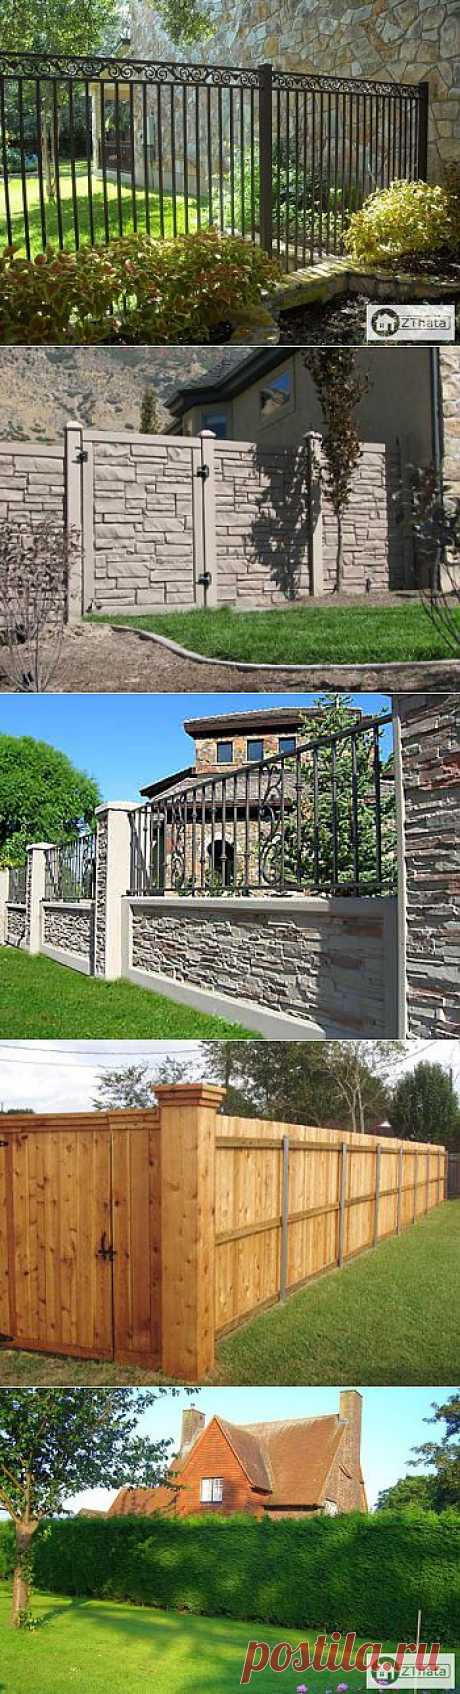 Stone fence, metal fencing or green hedge. I hope, these characteristics will help you will decide on the choice like fencing for the house or giving.